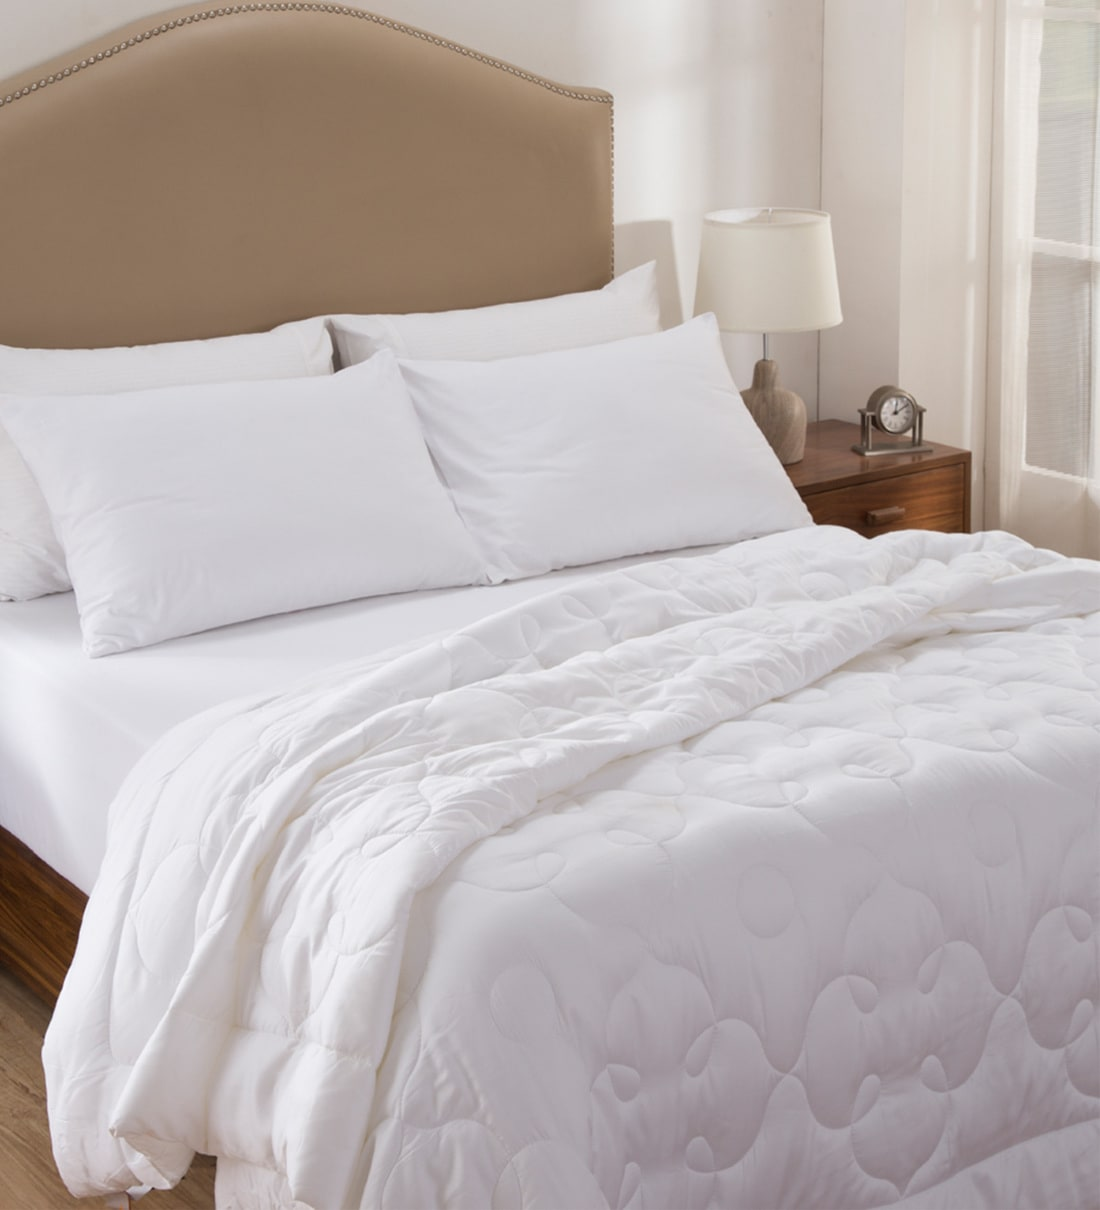 Buy Silk Sleep 100 Cotton Microfiber Filled Queen Size Ac Room Duvet By Maspar Online Double Bed Duvets Bed Linen Furnishings Pepperfry Product